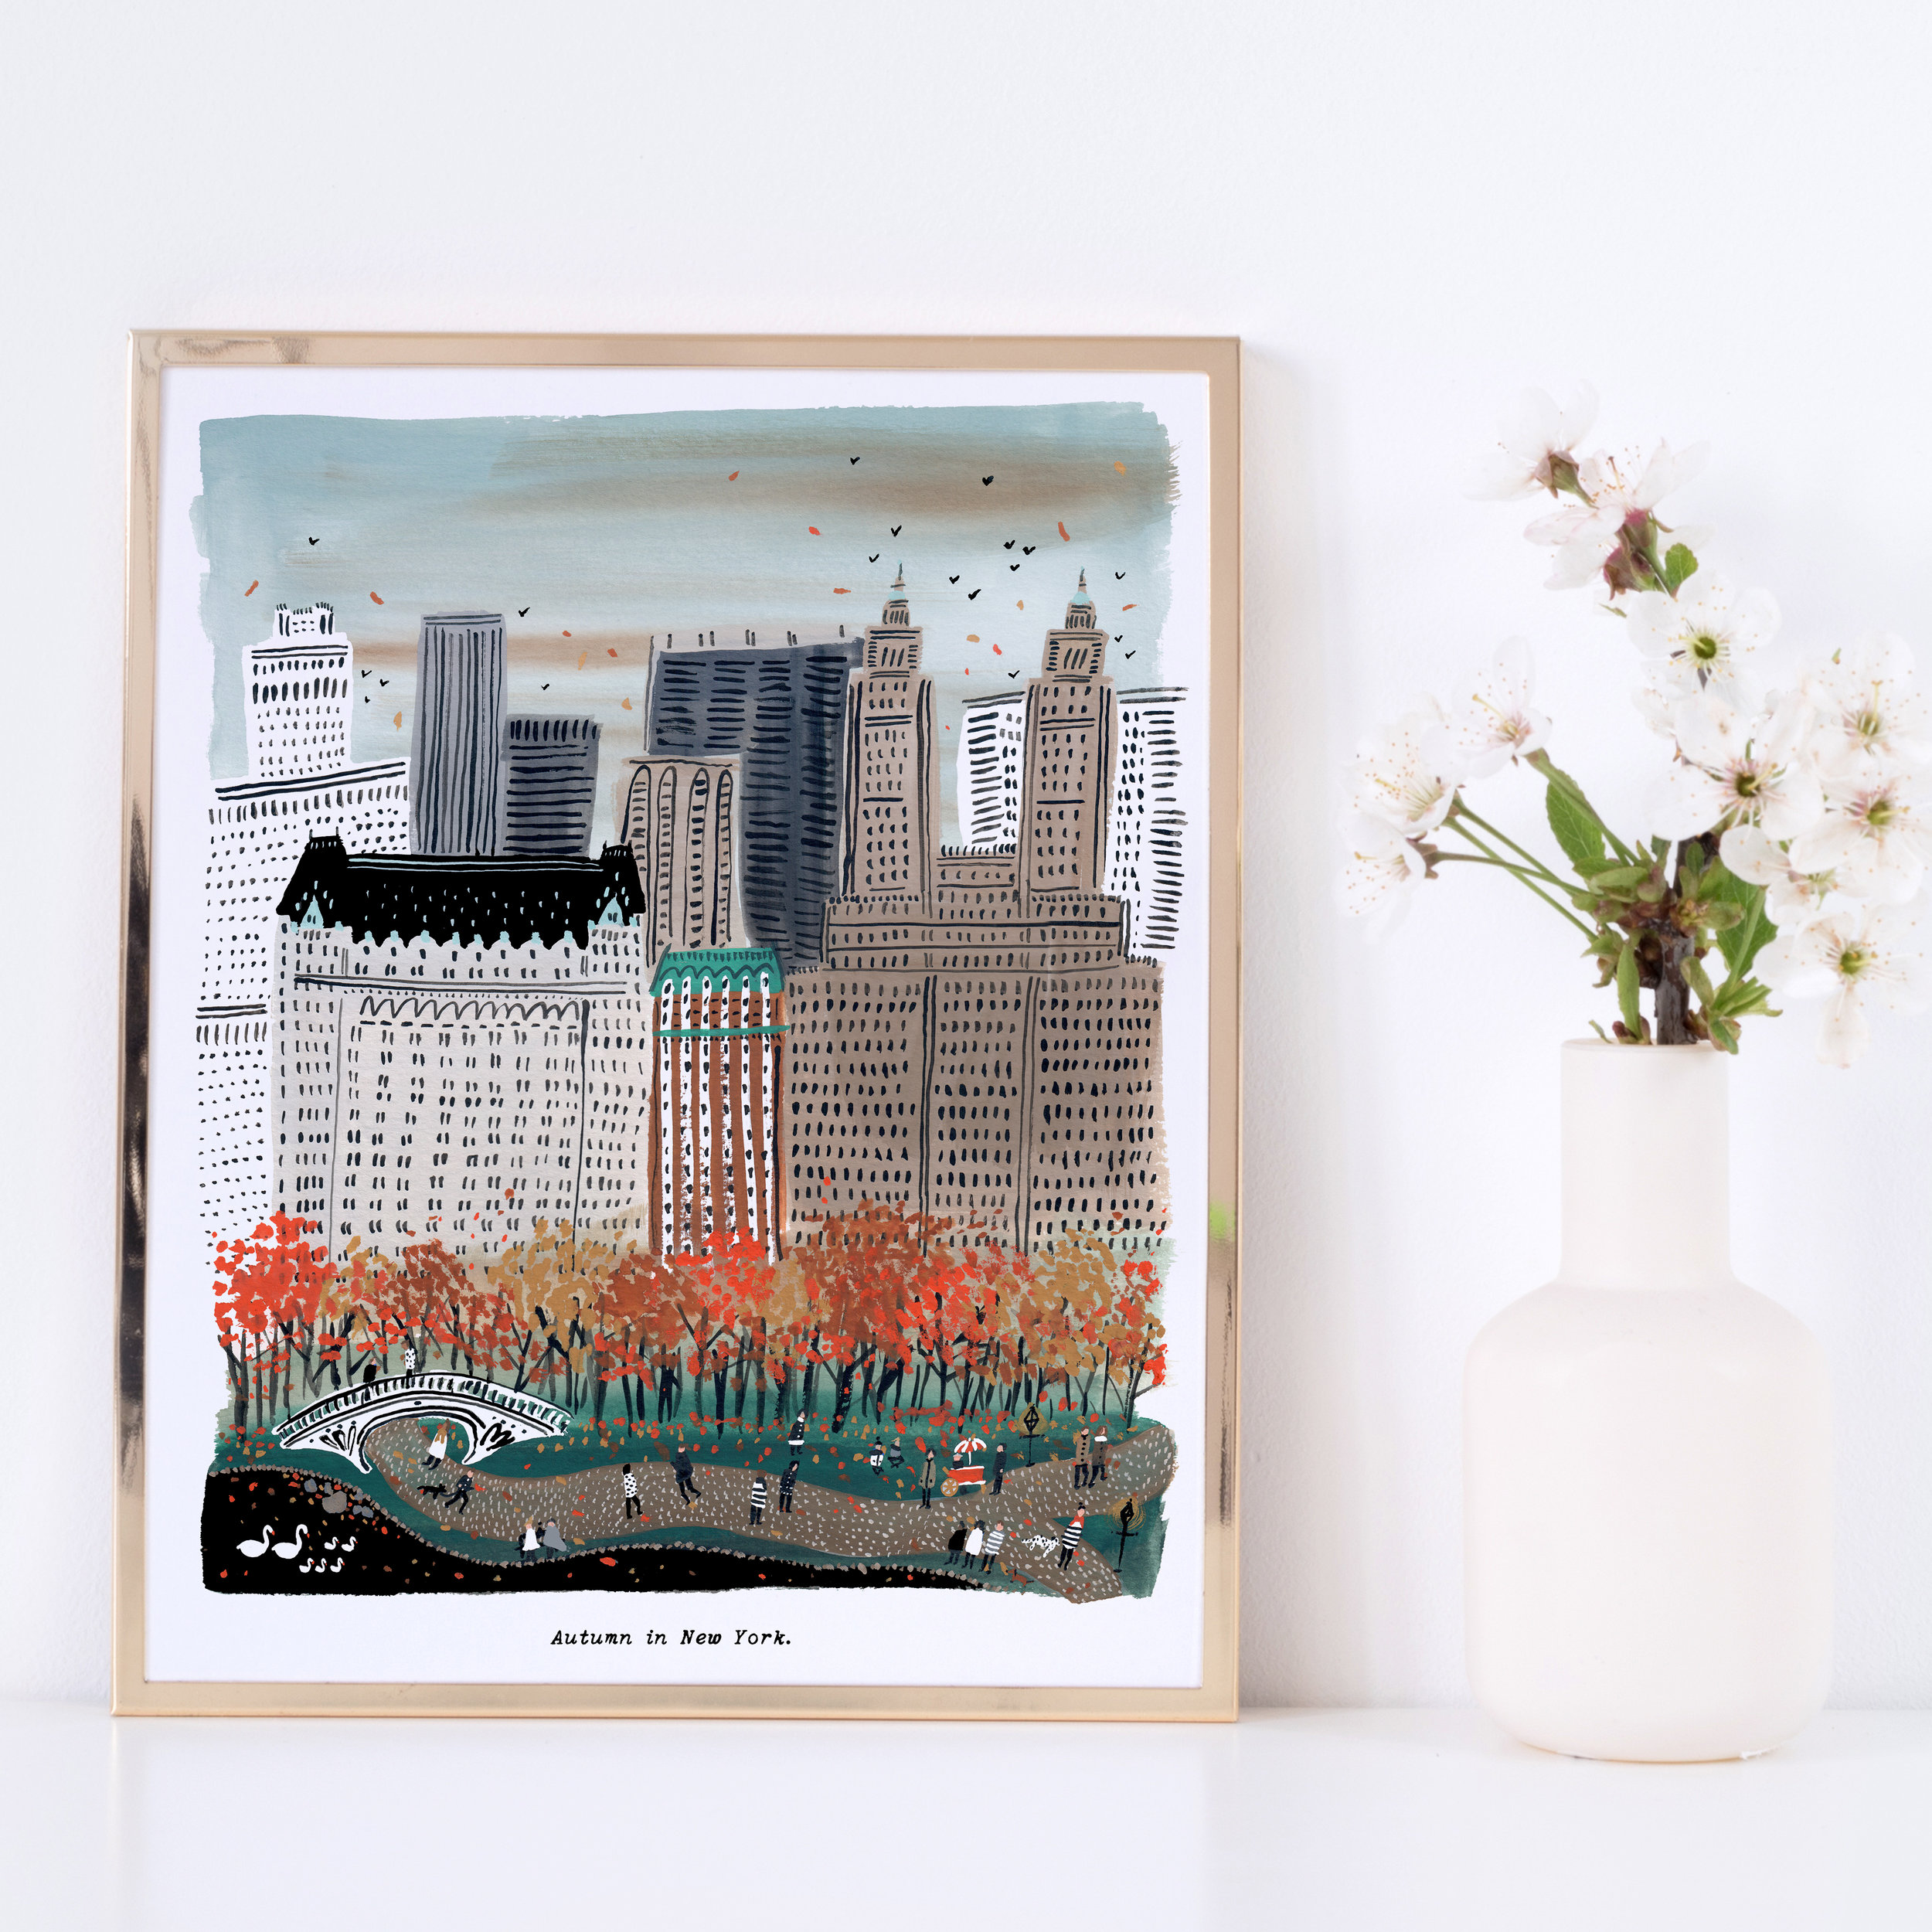 Autumn in New York_Framed.jpg